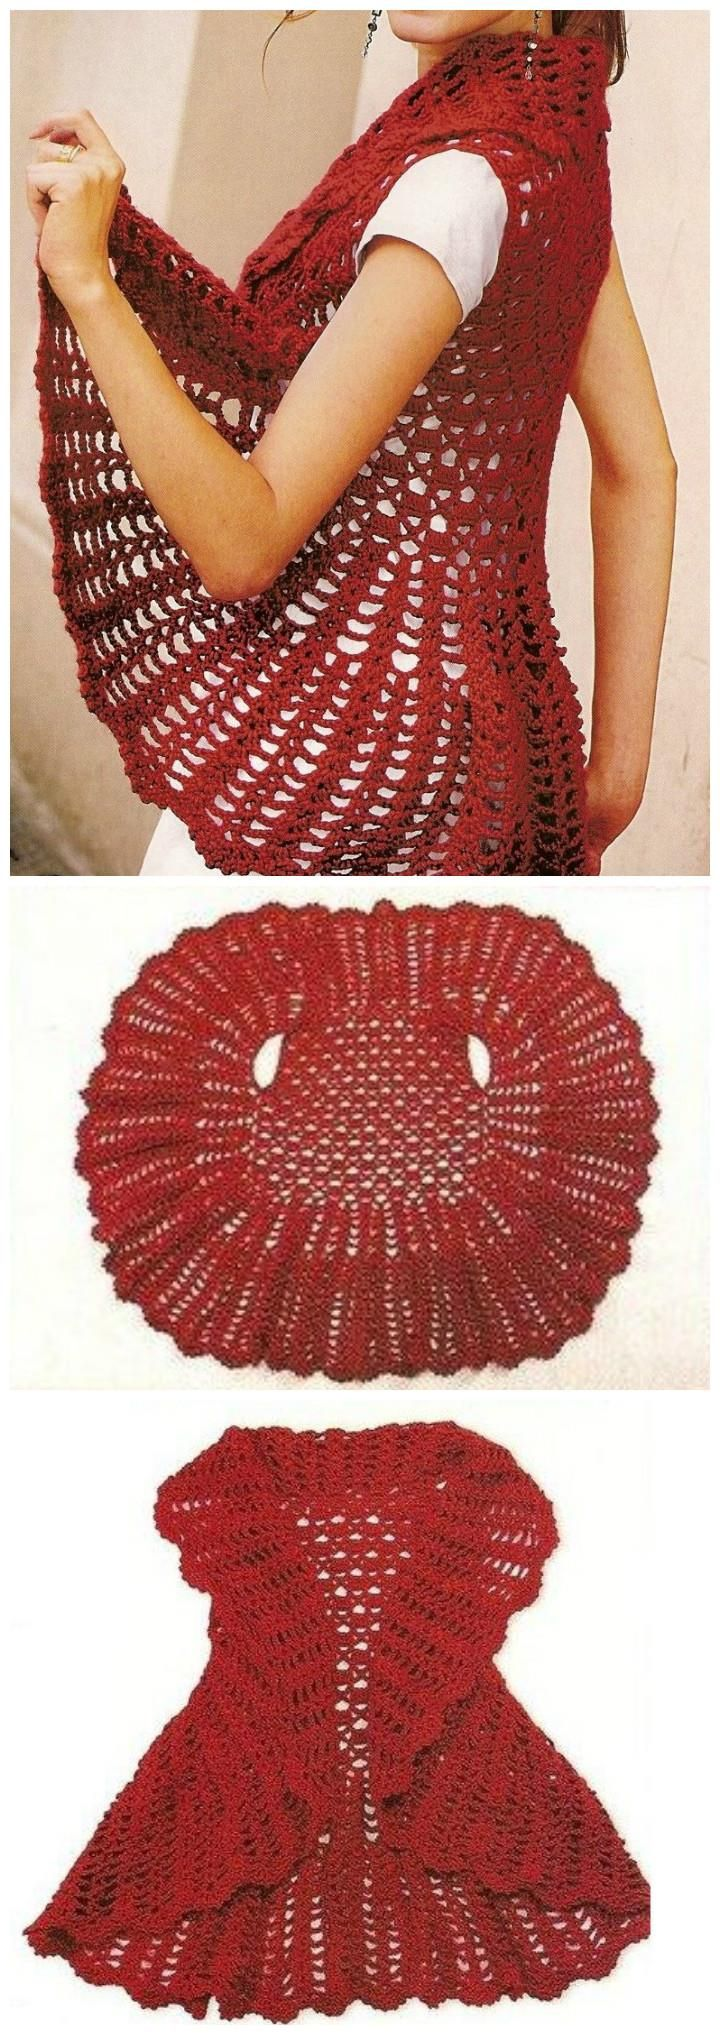 12 free crochet patterns for circular vest jacket crochet free 12 free crochet patterns for circular vest jacket bankloansurffo Choice Image